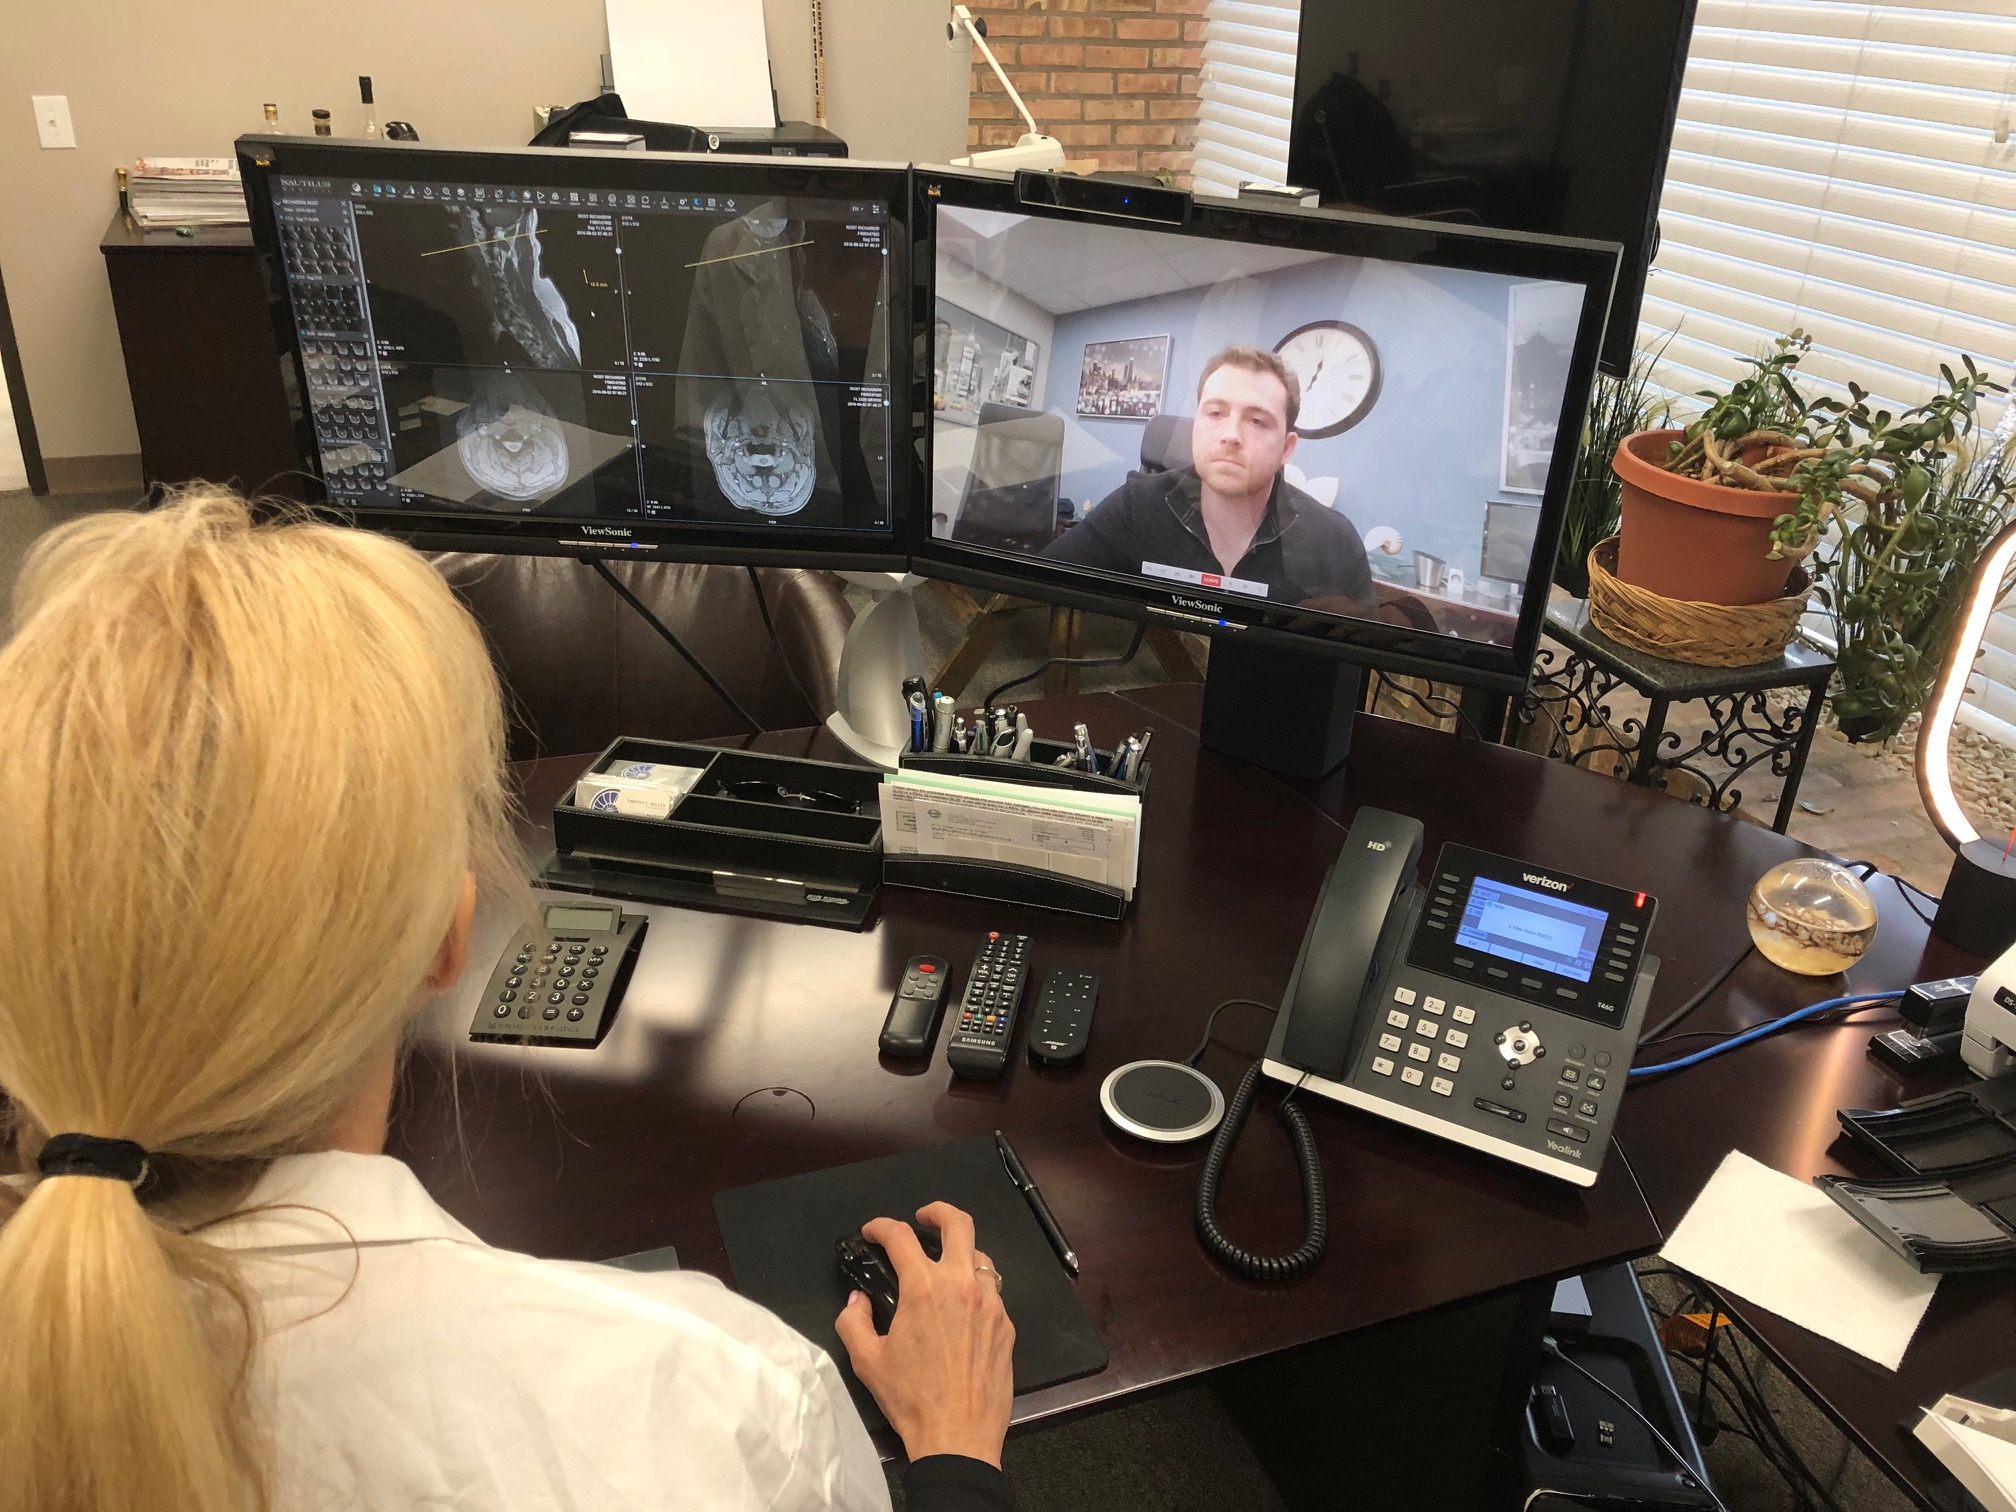 View images with professionals or patients during a telehealth or telemedicine consultation. Call for a demo today. 844-4-TELERAY www.teleray.com